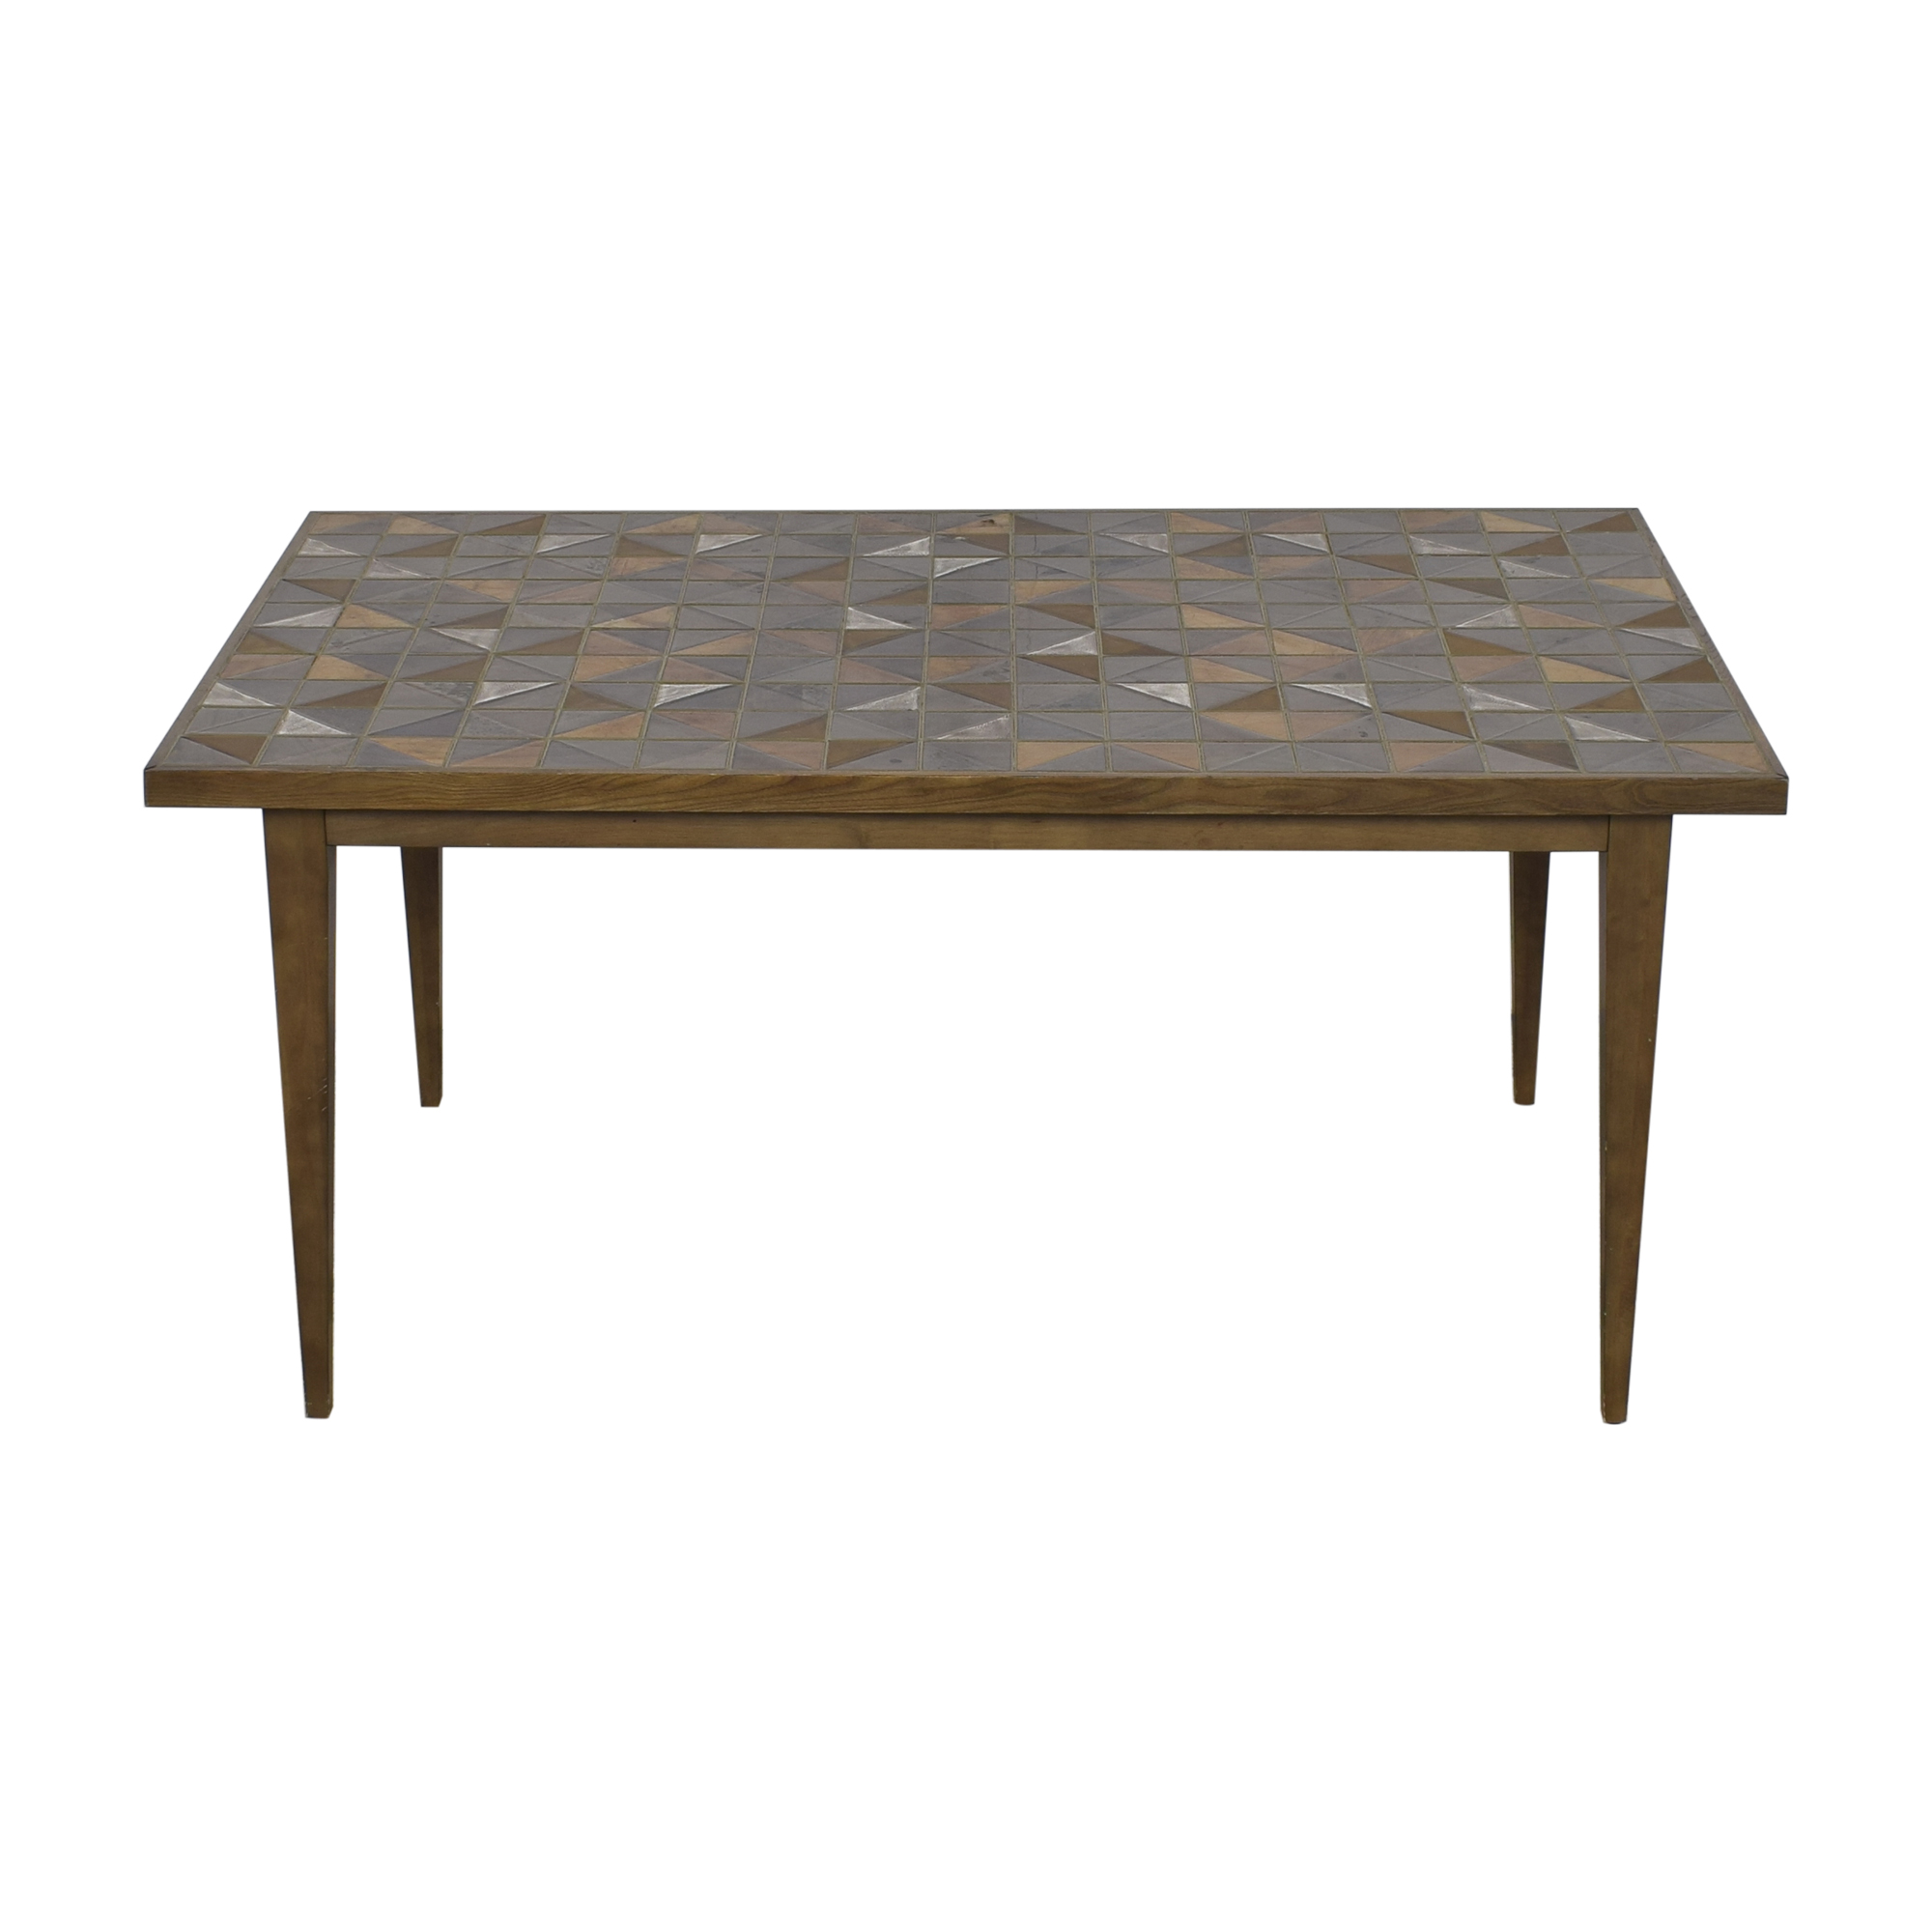 shop West Elm Lubna Chowdhary Tiled Dining Table West Elm Tables